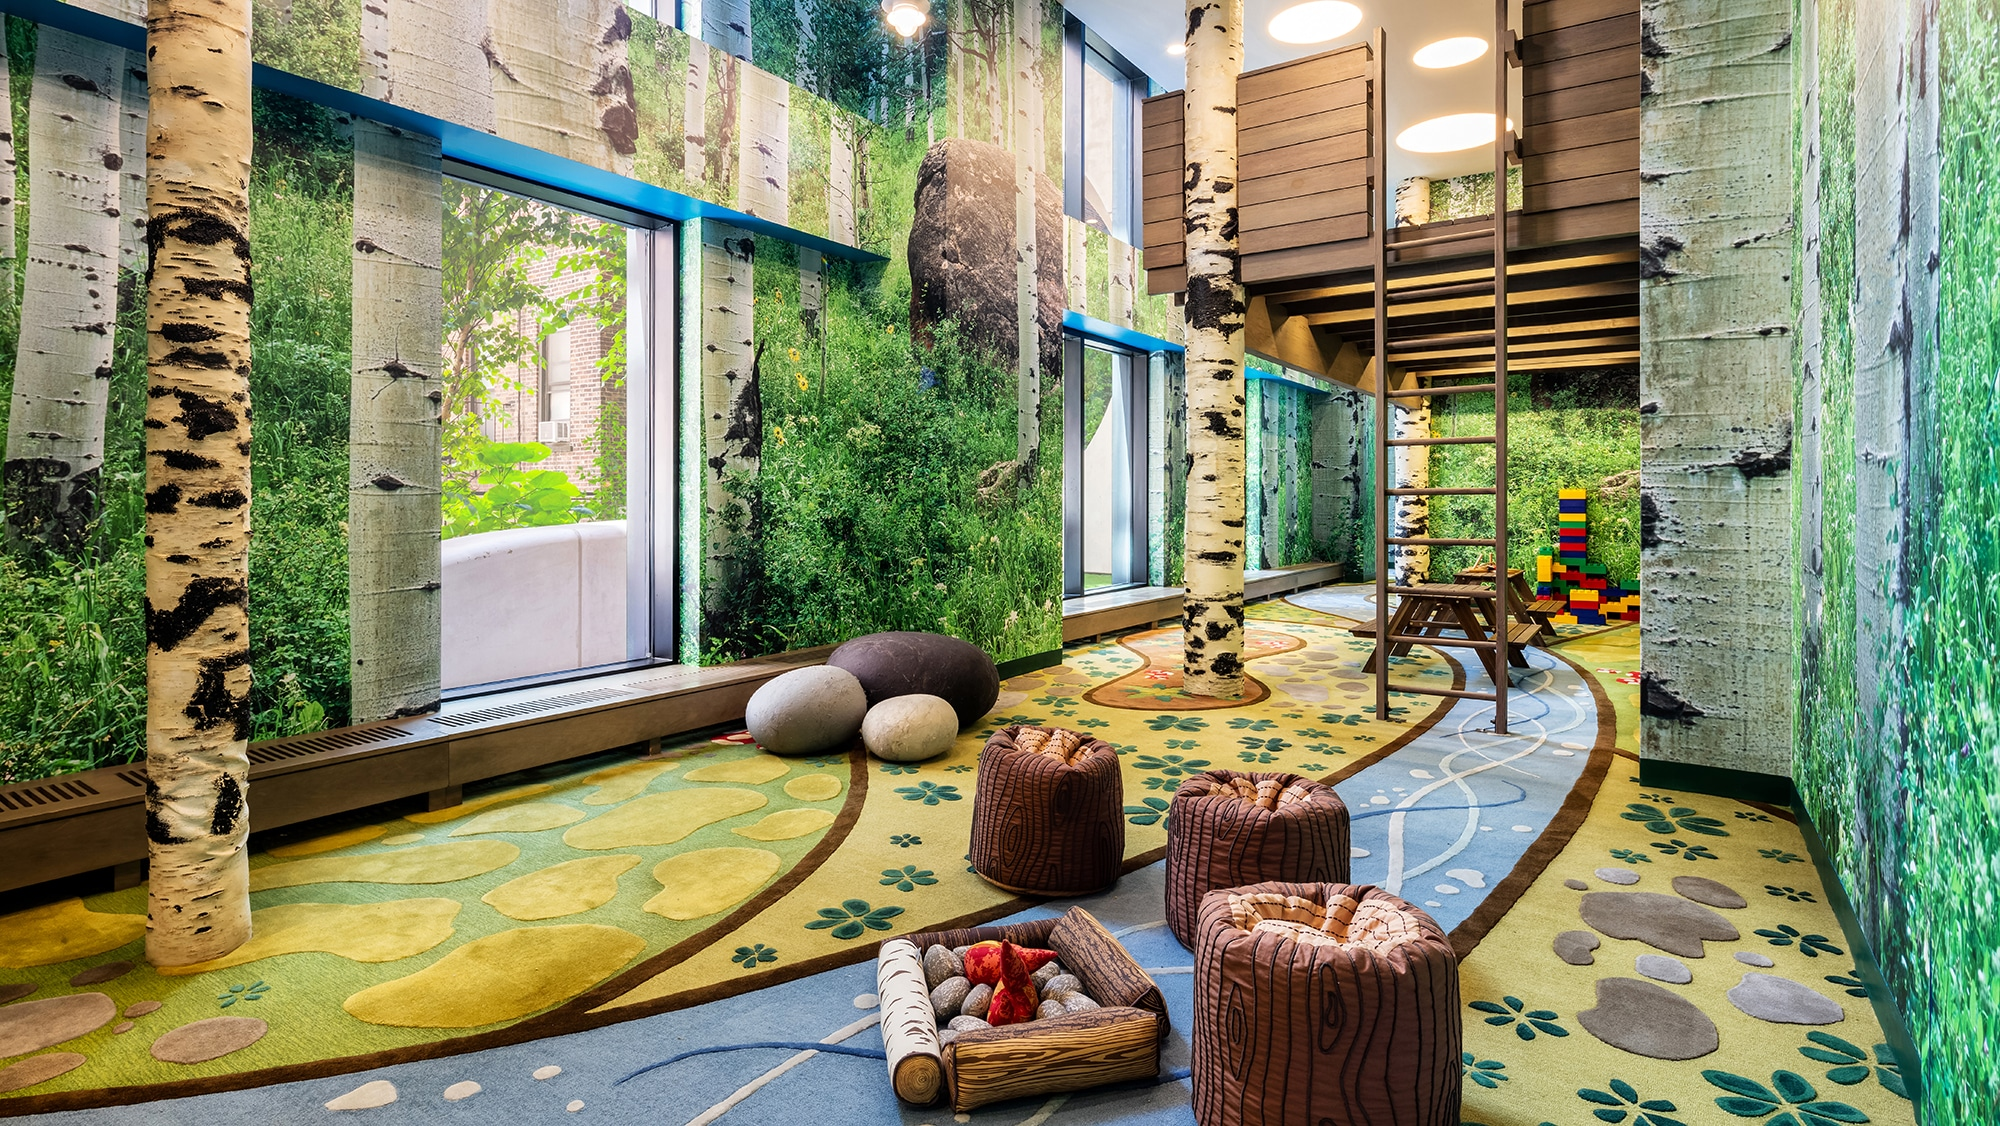 Kids playroom in The Kent Condos in NYC. Large room with forest themed wallpaper, a tree house, and sitting areas.